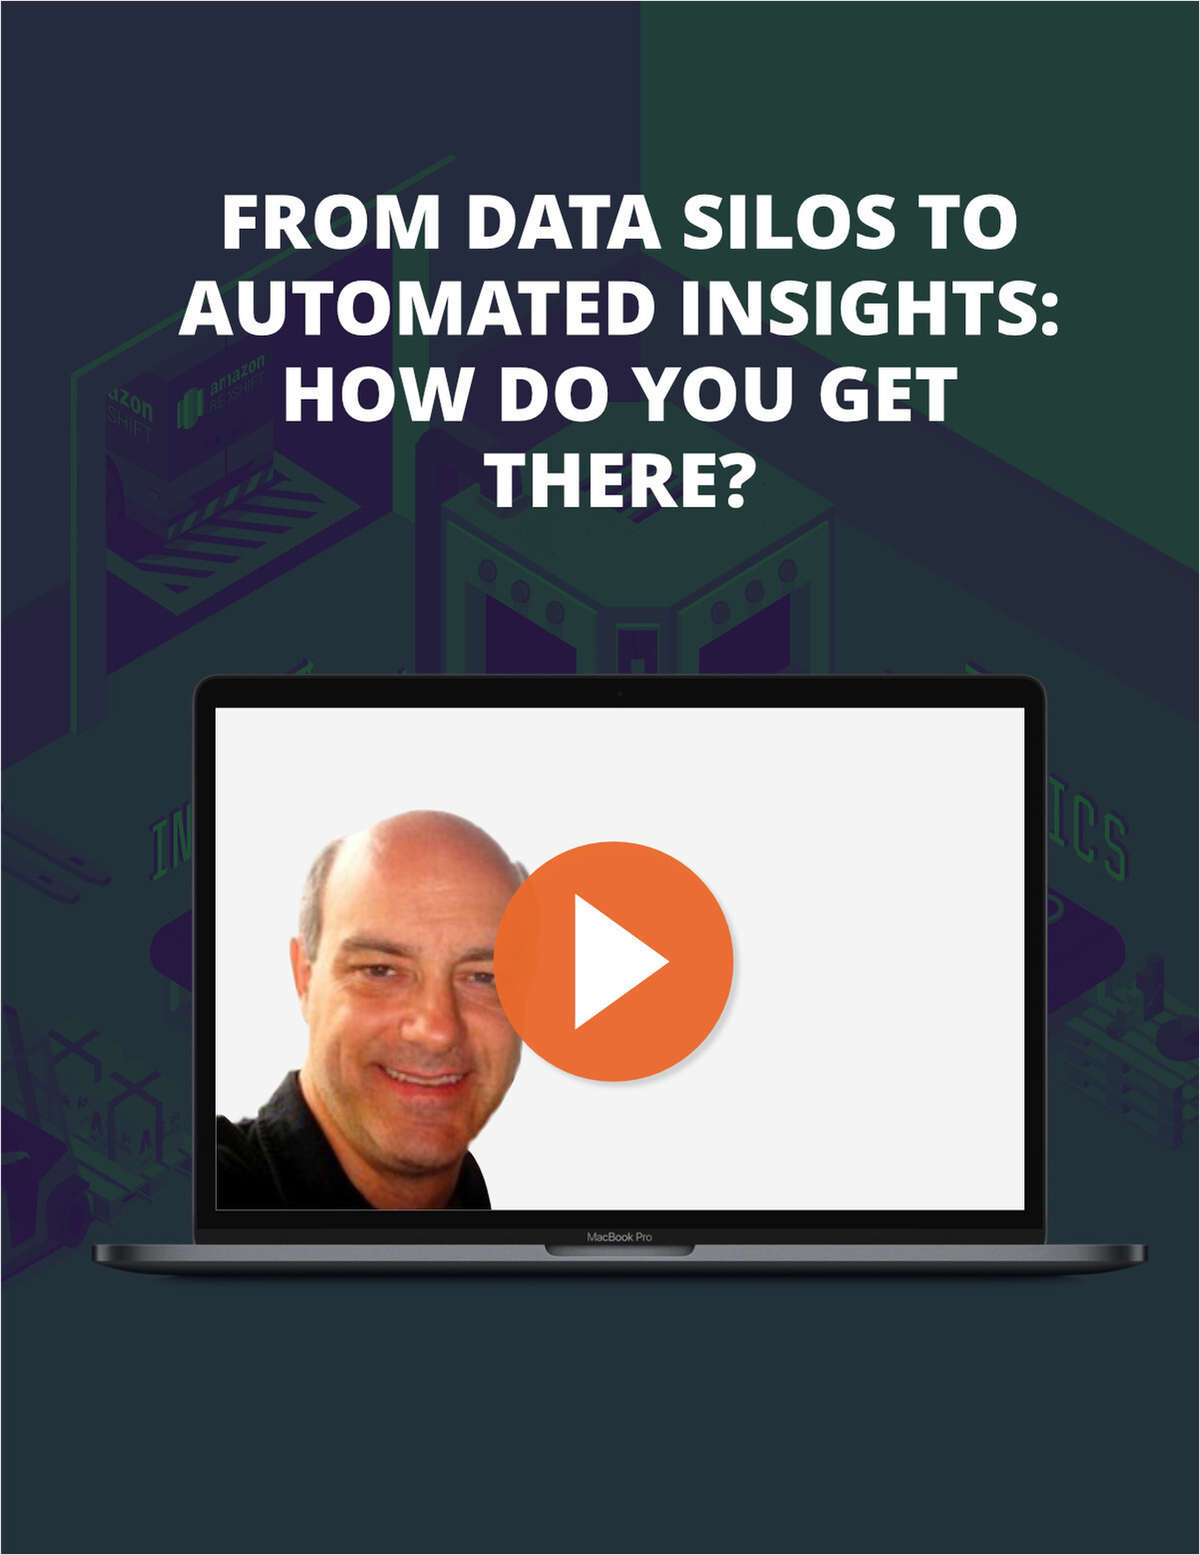 From Data Silos To Automated Insights. How Do You Get There?